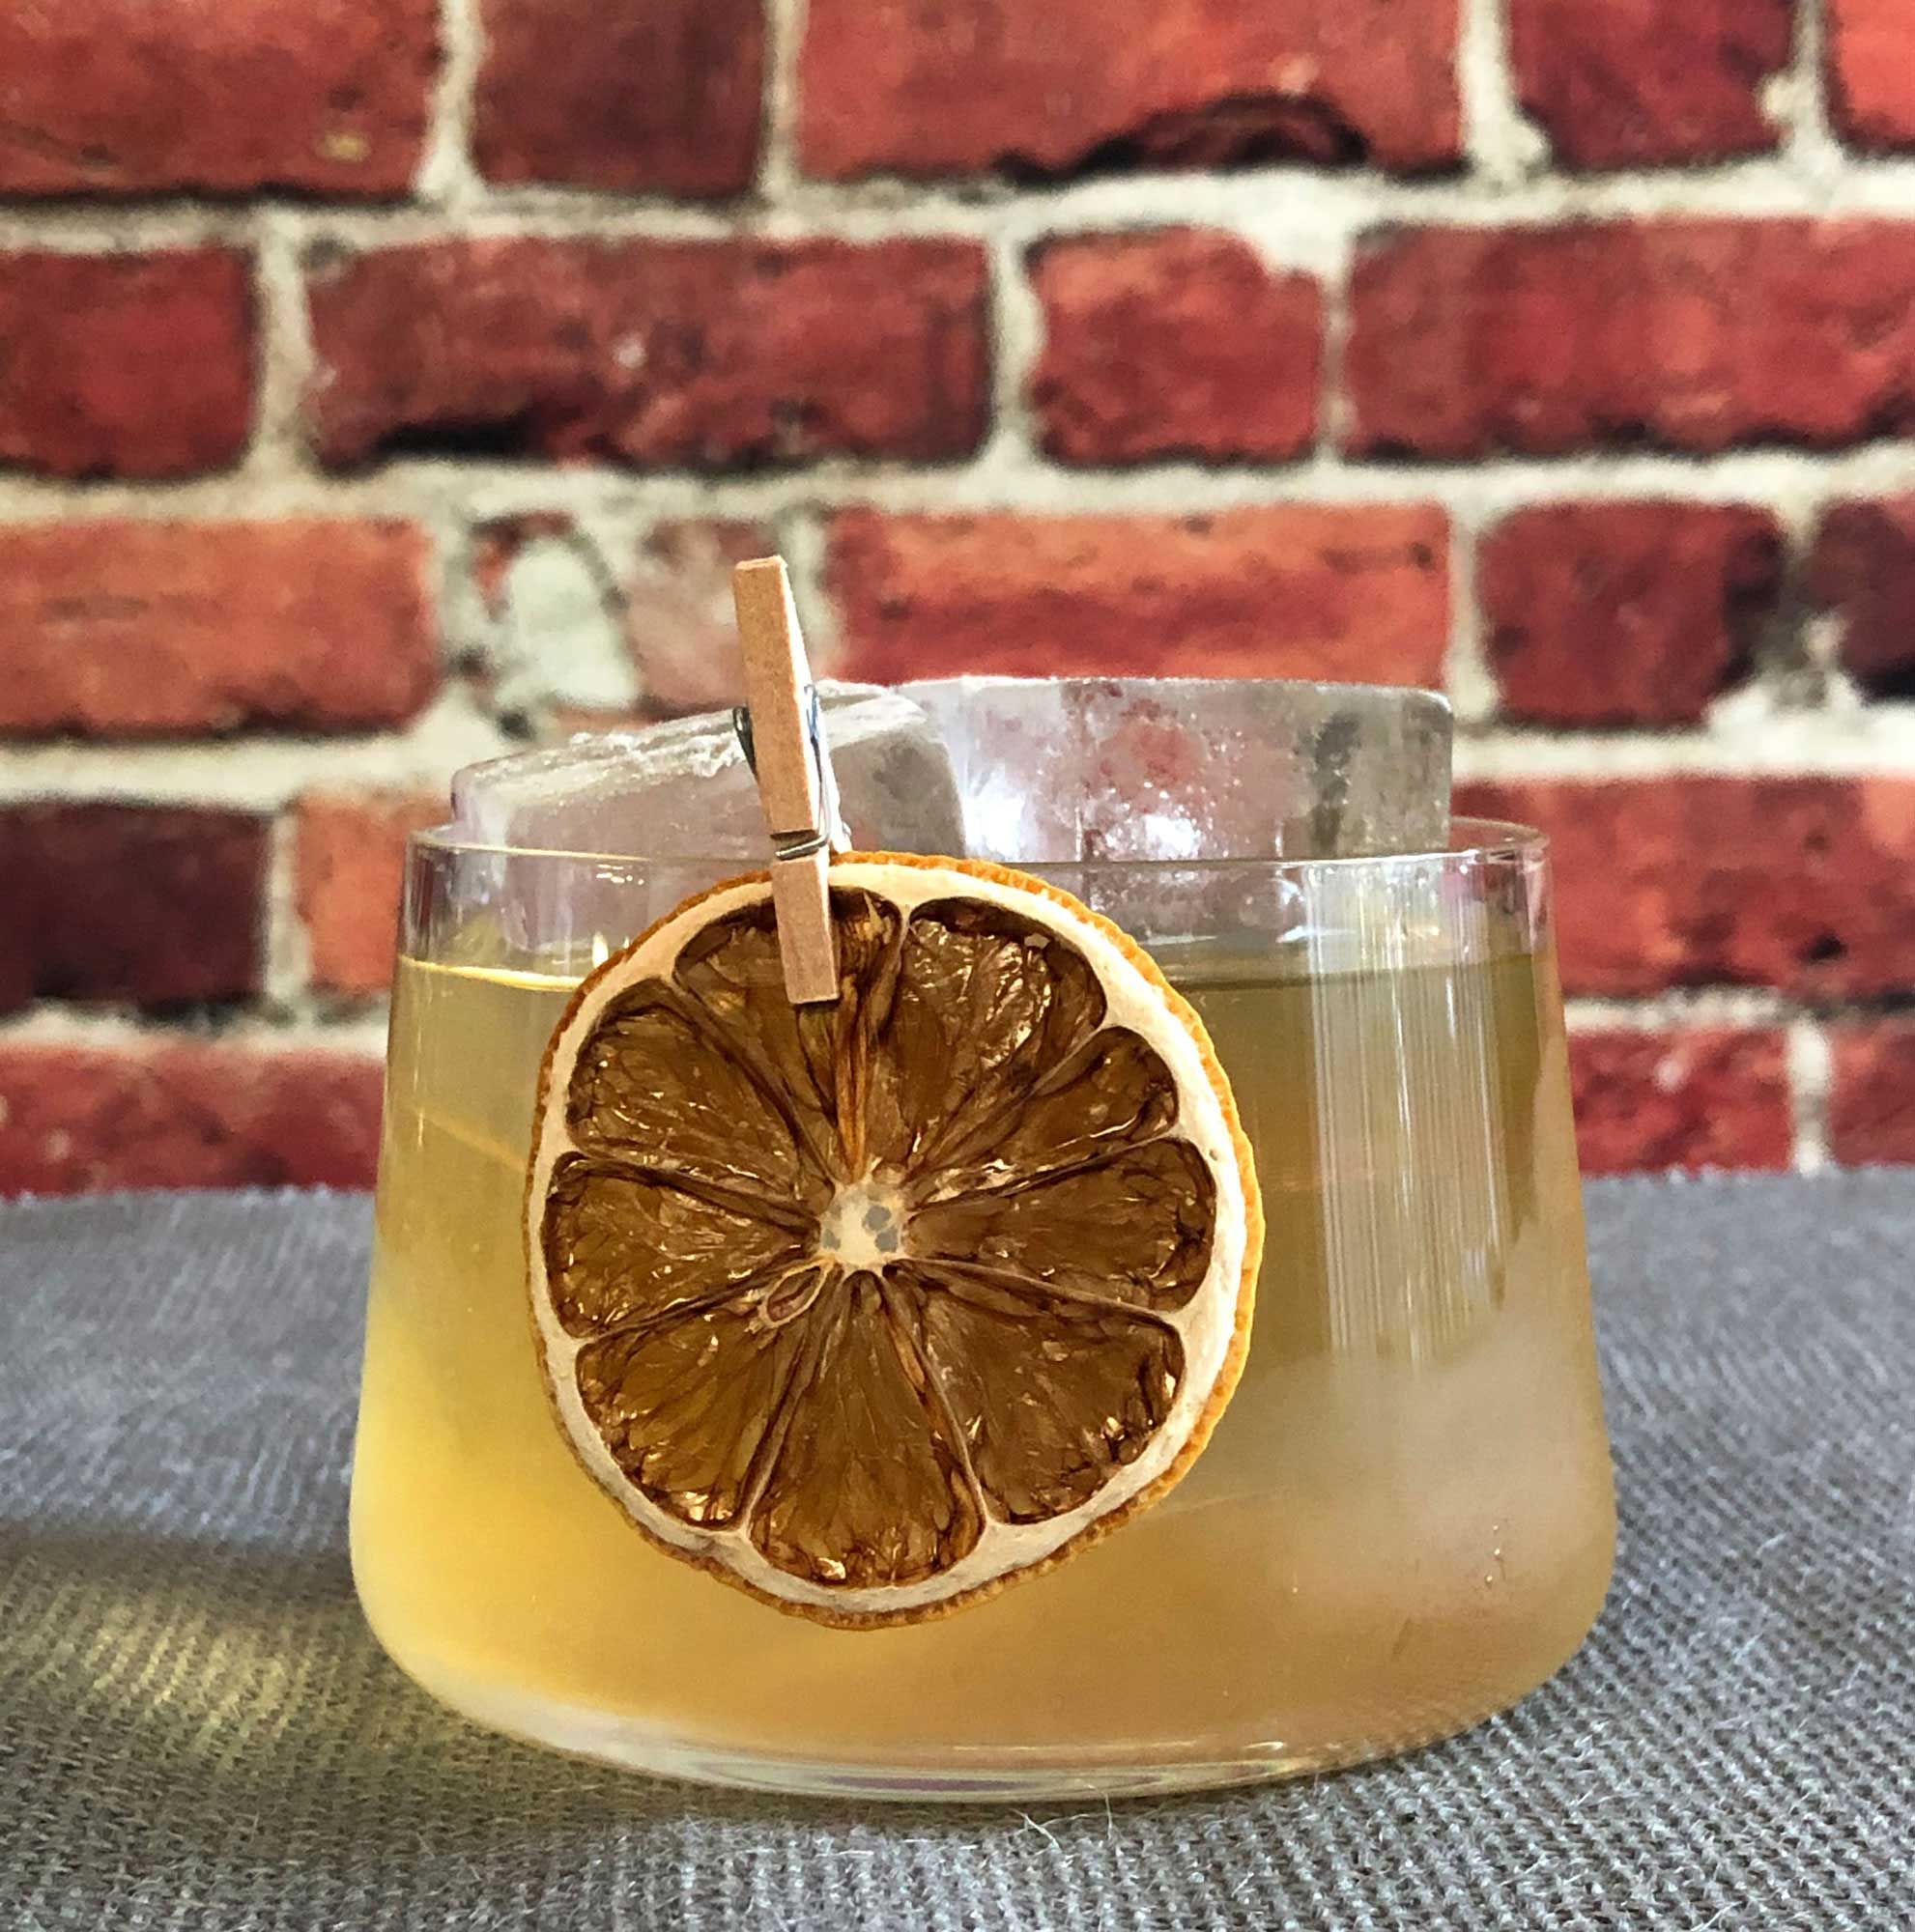 An example of the July on Royal Street, the mixed drink (cocktail) featuring Mattei Cap Corse Blanc Quinquina, Salers Gentian Apéritif, reposado tequila, Bénédictine, and lemon juice; photo by Lee Edwards